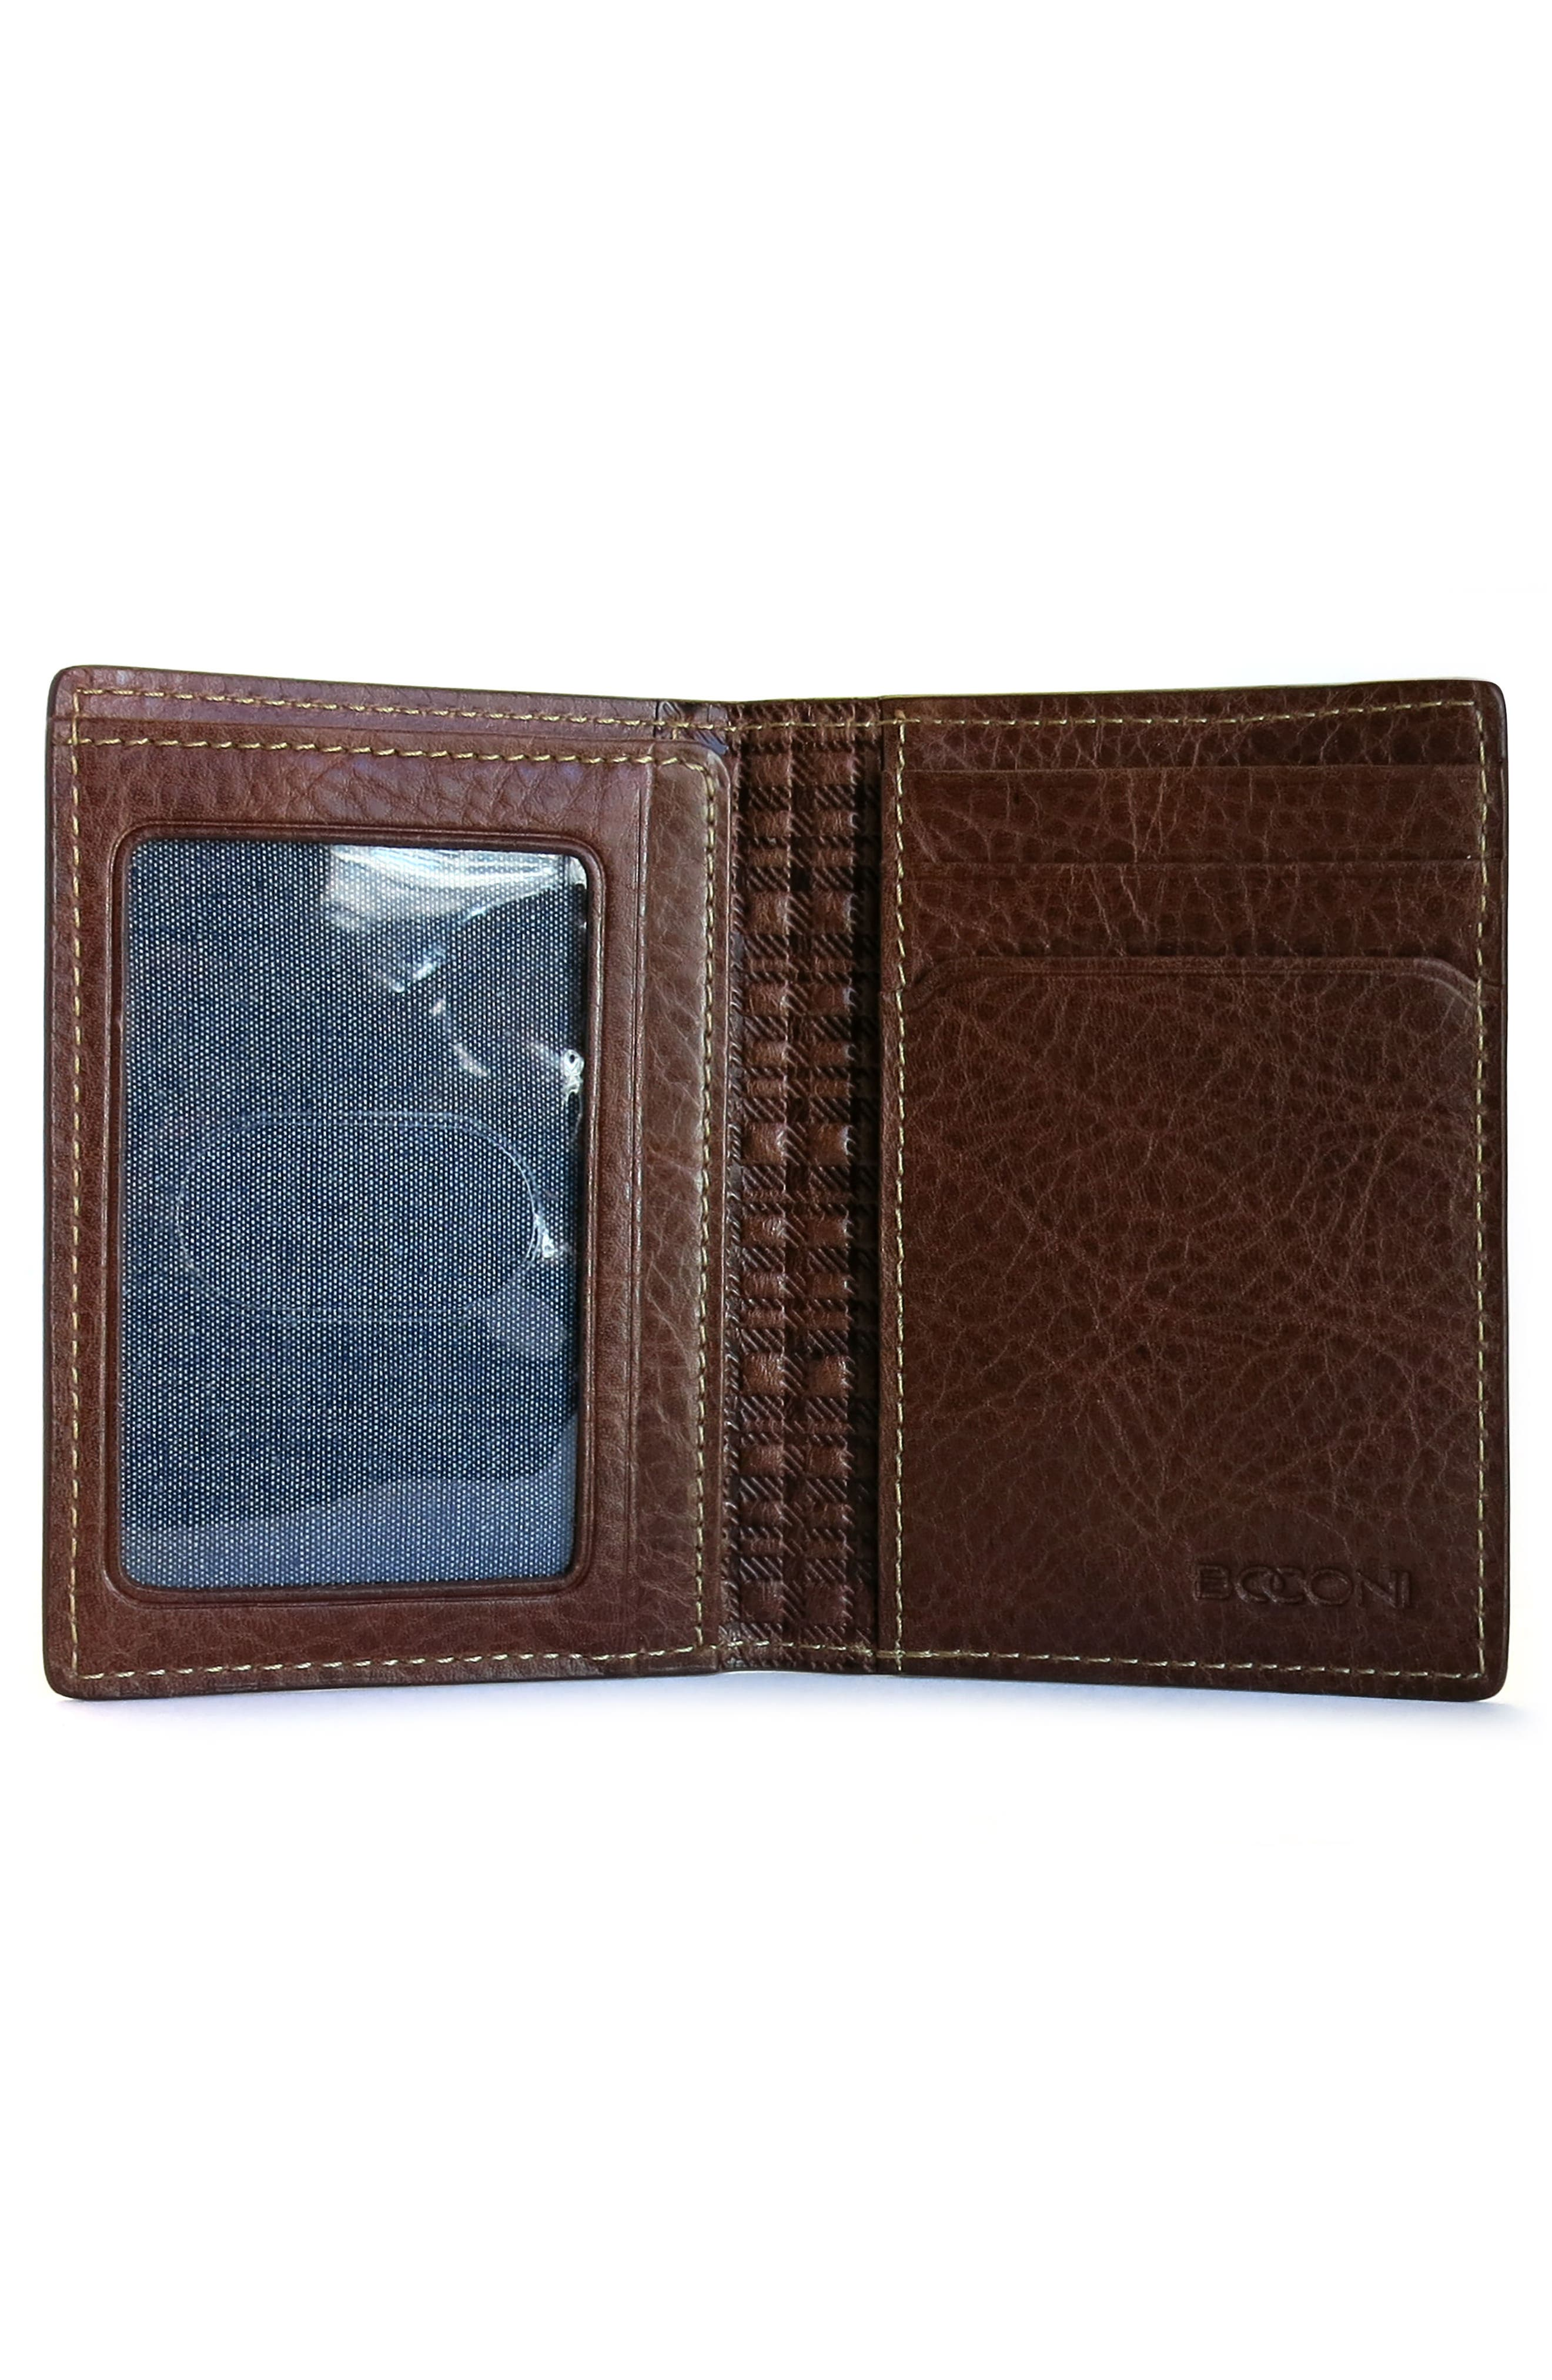 Caleb Leather Folding Card Case,                             Alternate thumbnail 2, color,                             CHESTNUT